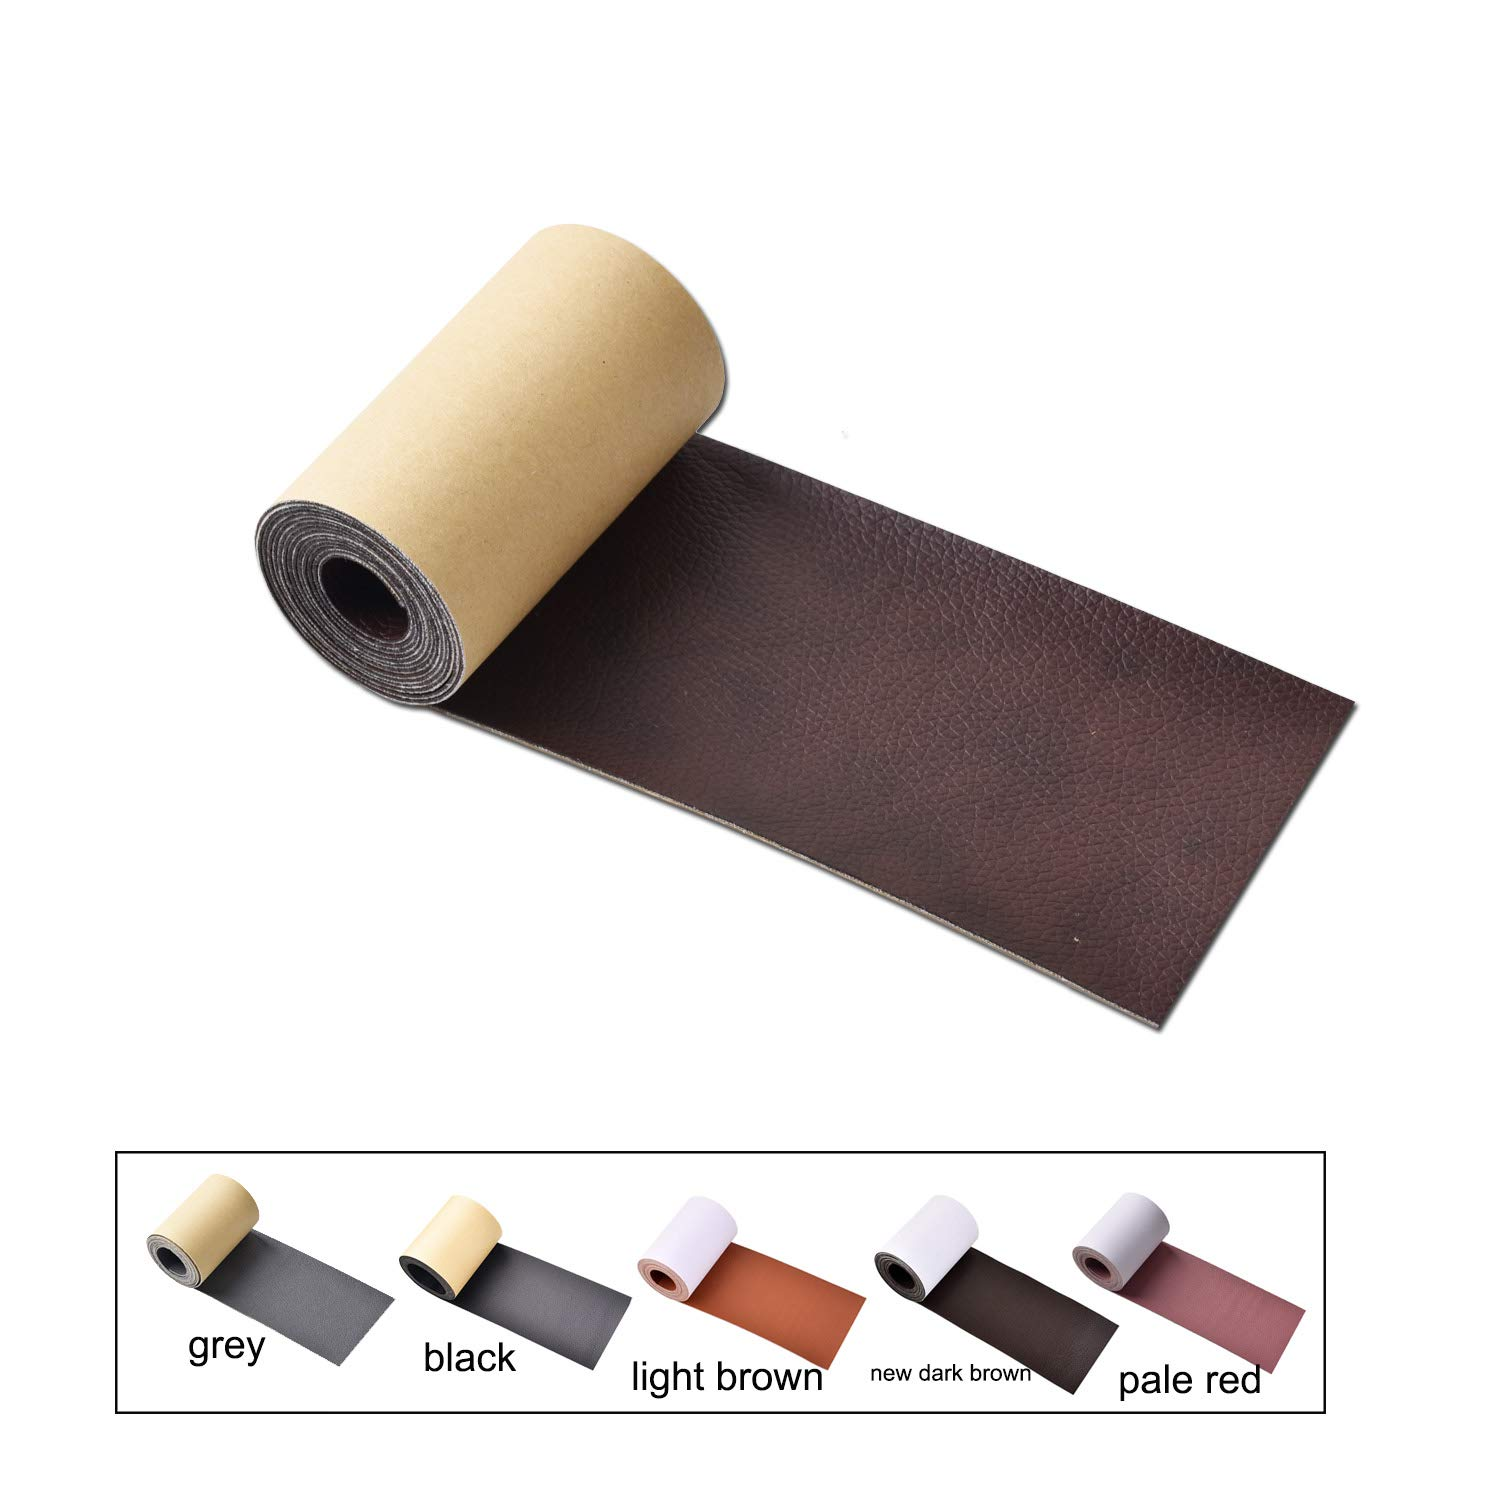 Brilliant Leather Tape 3X60 Inch Self Adhesive Leather Repair Patch For Sofas Couch Furniture Drivers Seat Brown Unemploymentrelief Wooden Chair Designs For Living Room Unemploymentrelieforg